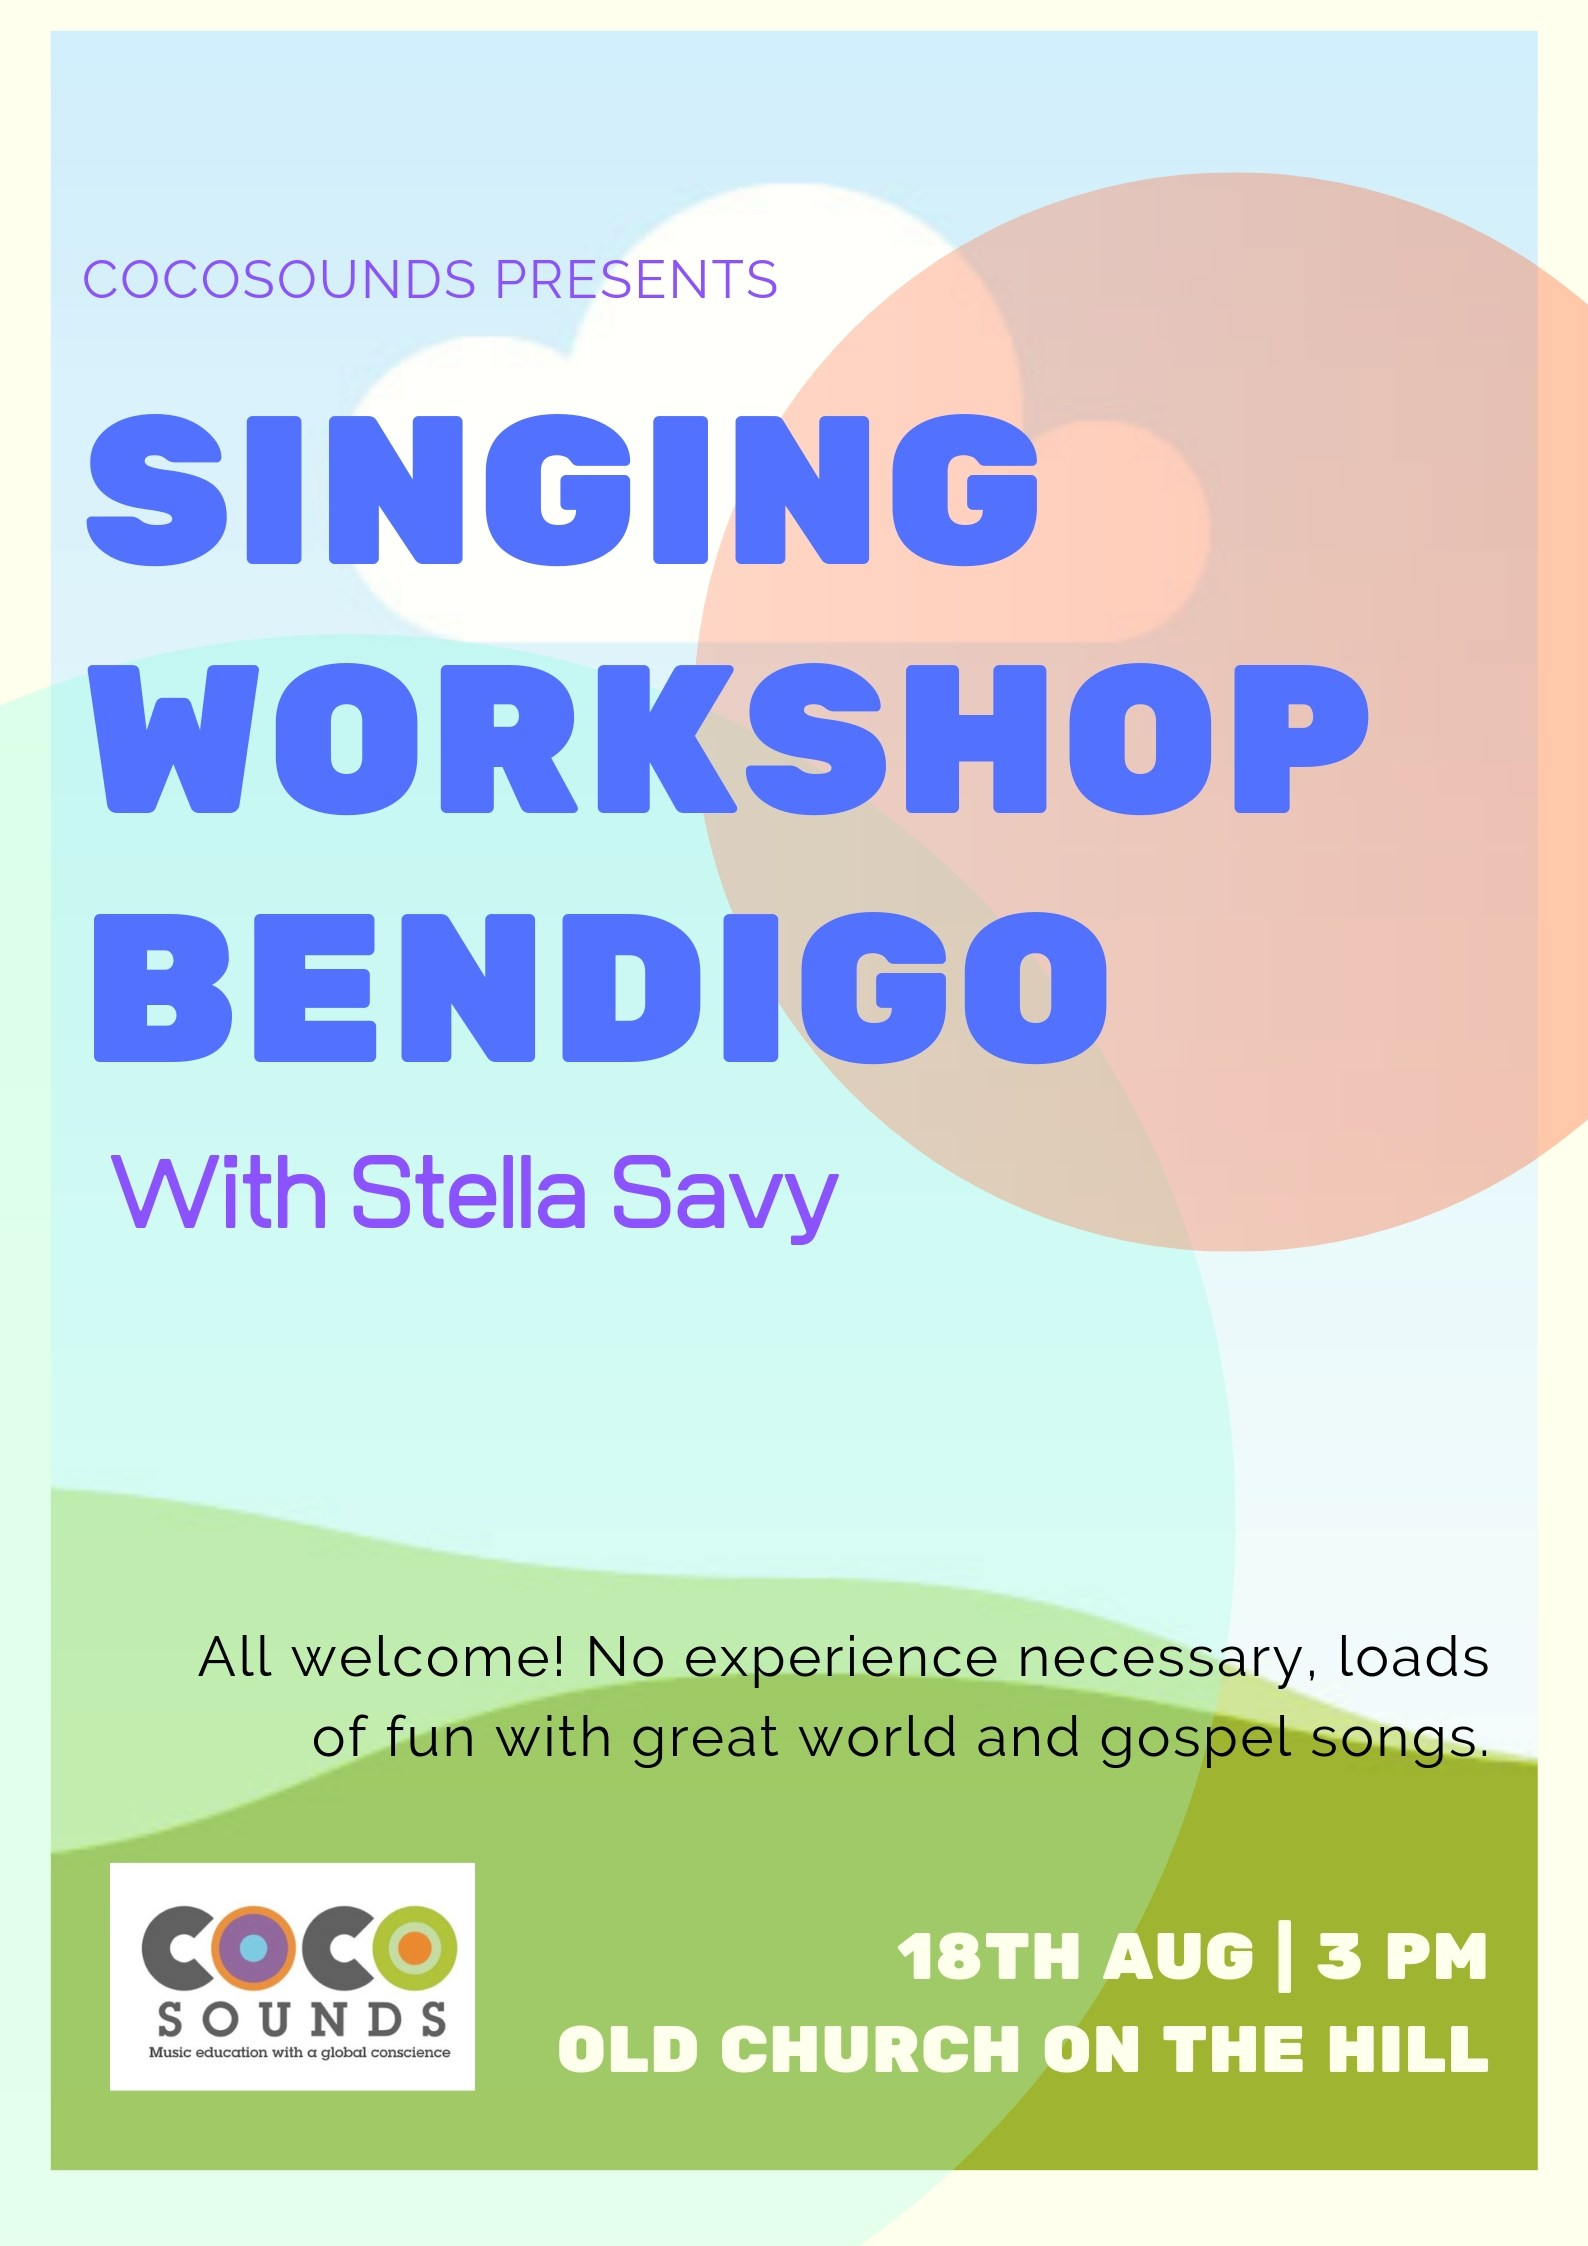 Bendigo Singing Workshop August 18th 2019